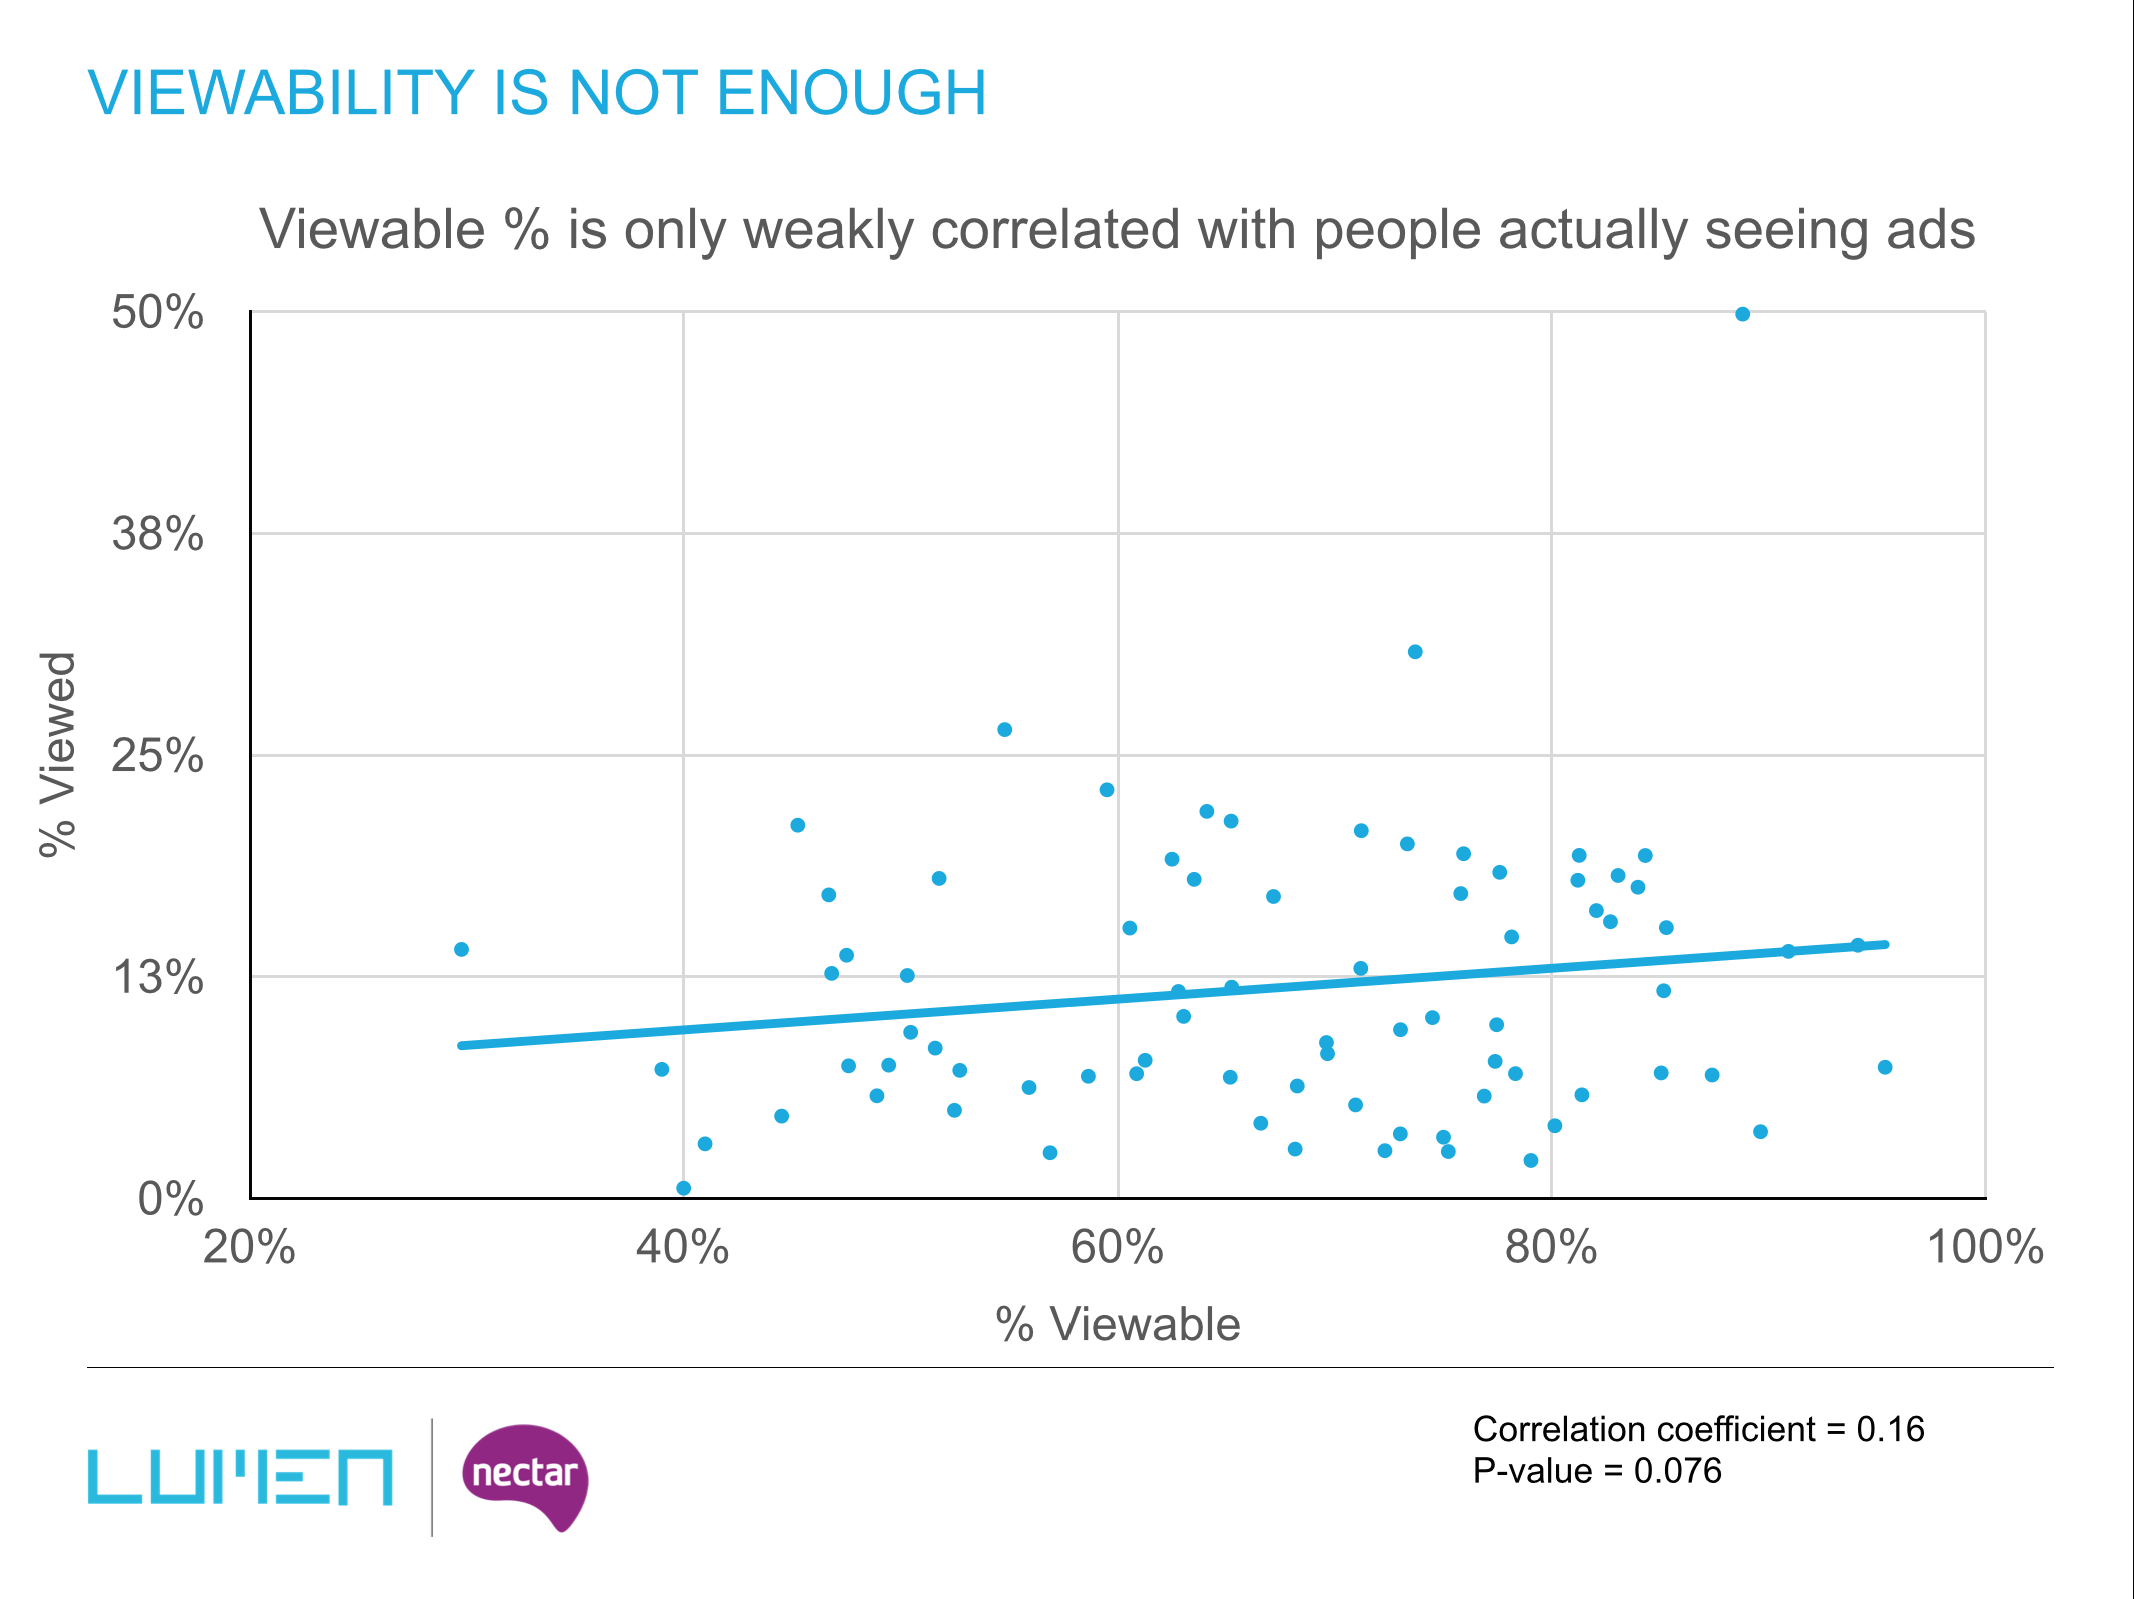 viewability-is-only-weakly-correlated-with-attention